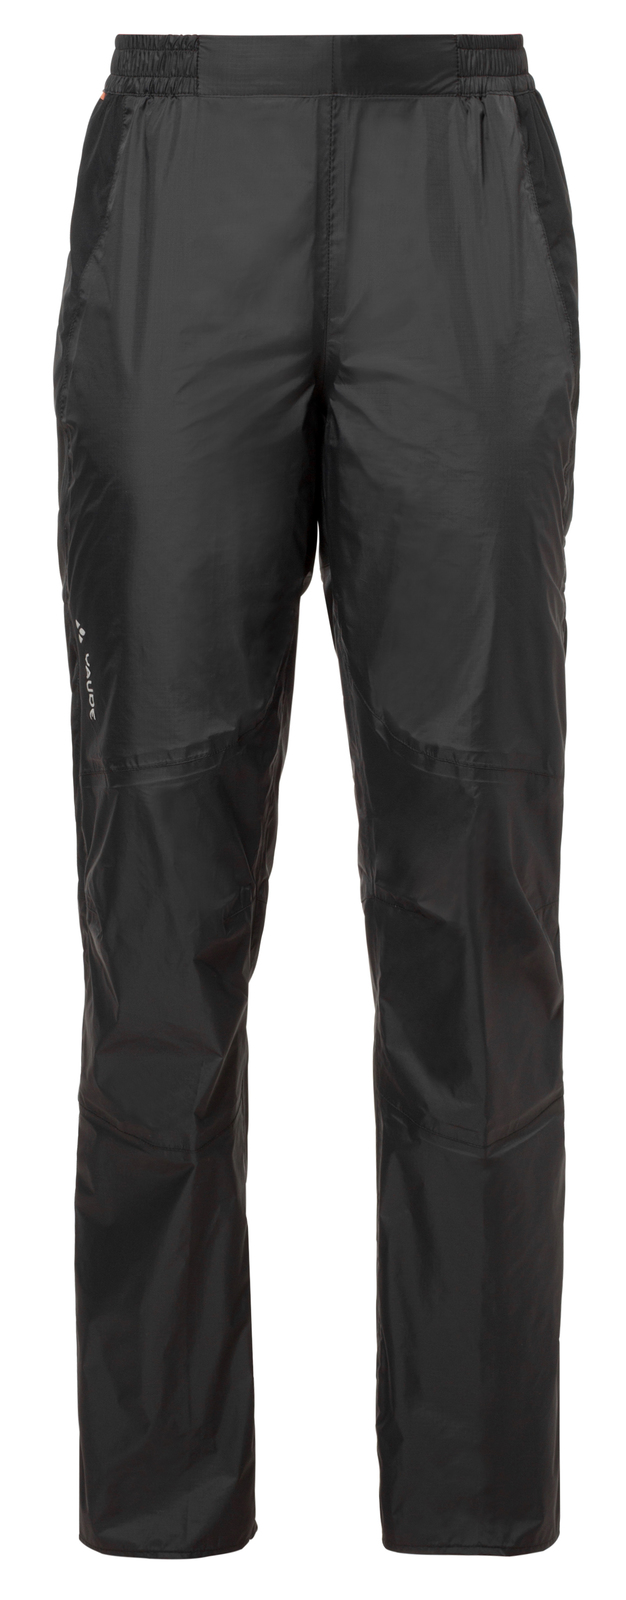 VAUDE Women´s Spray Pants III black Größe 34 - schneider-sports